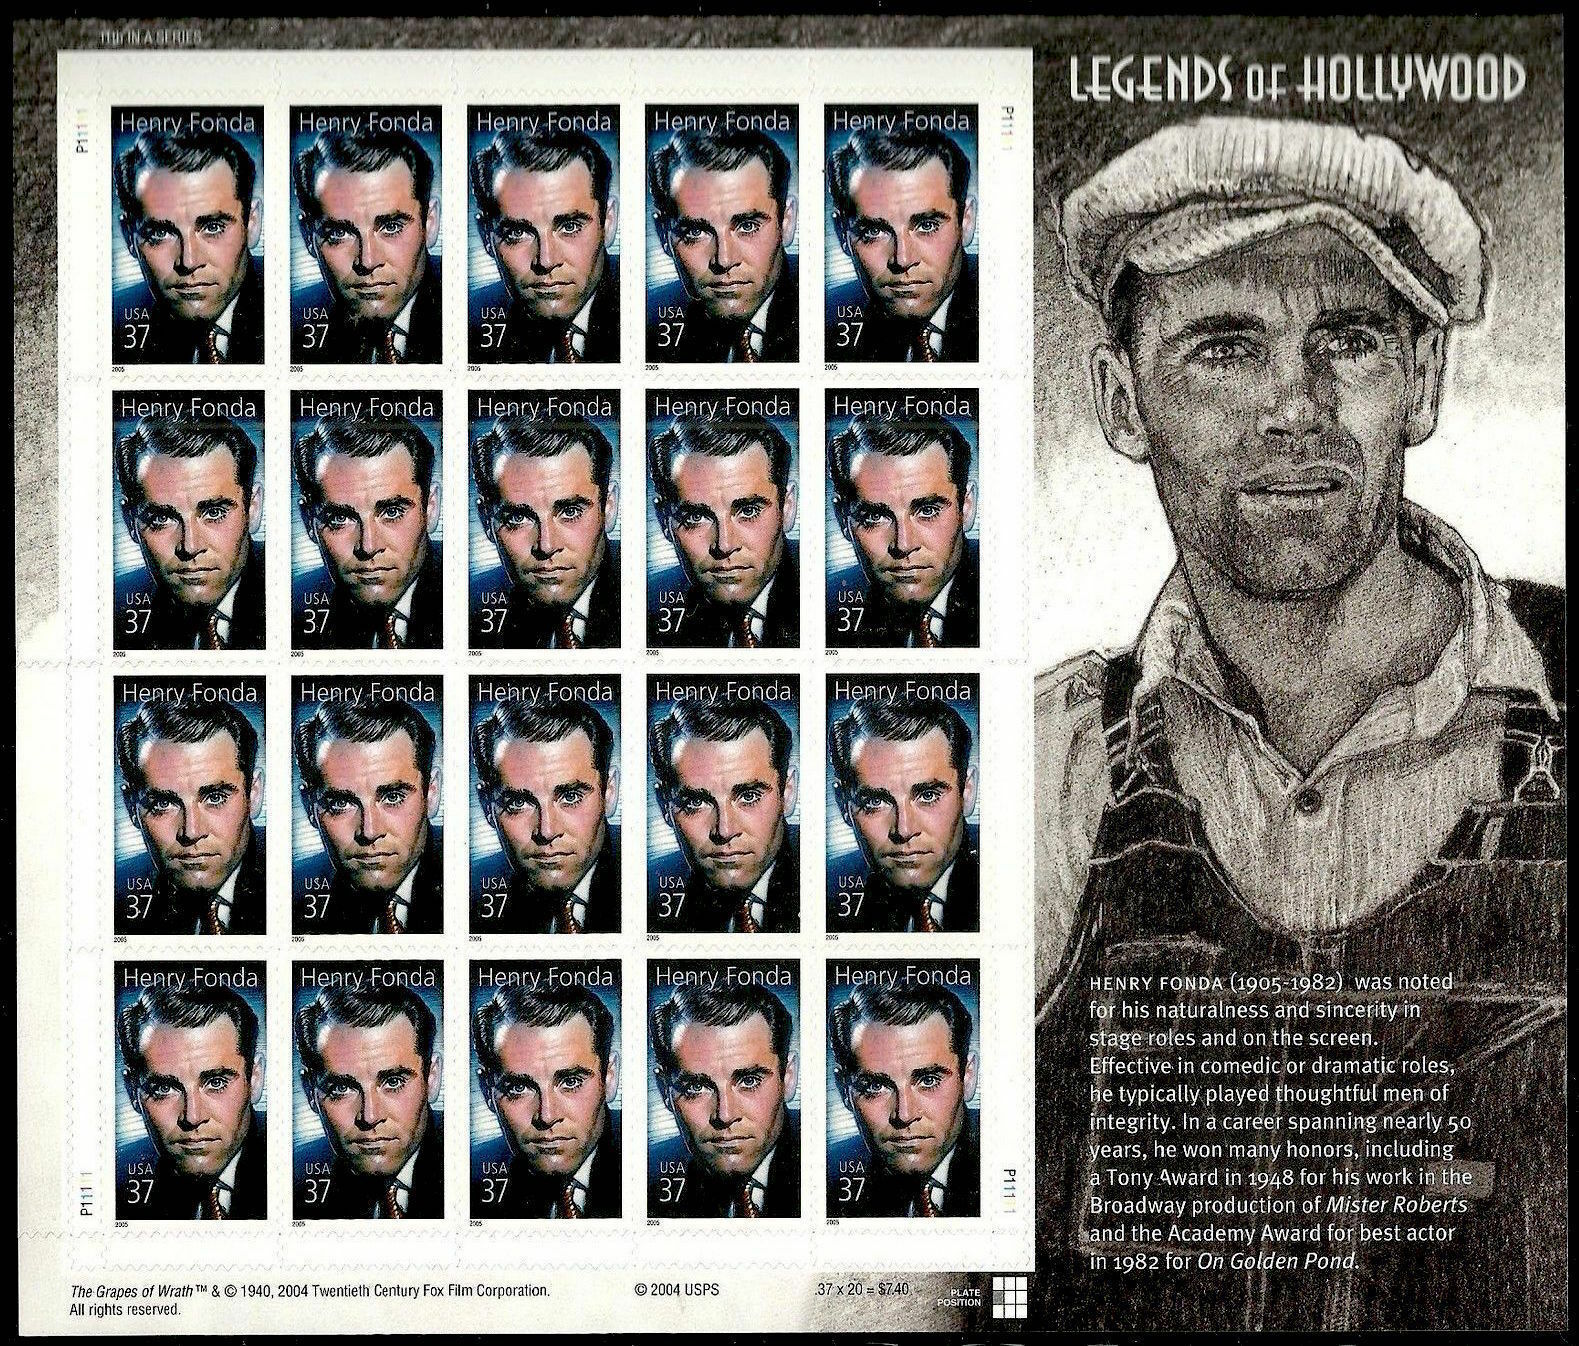 2005 37c Henry Fonda, Legends of Hollywood, Sheet of 20